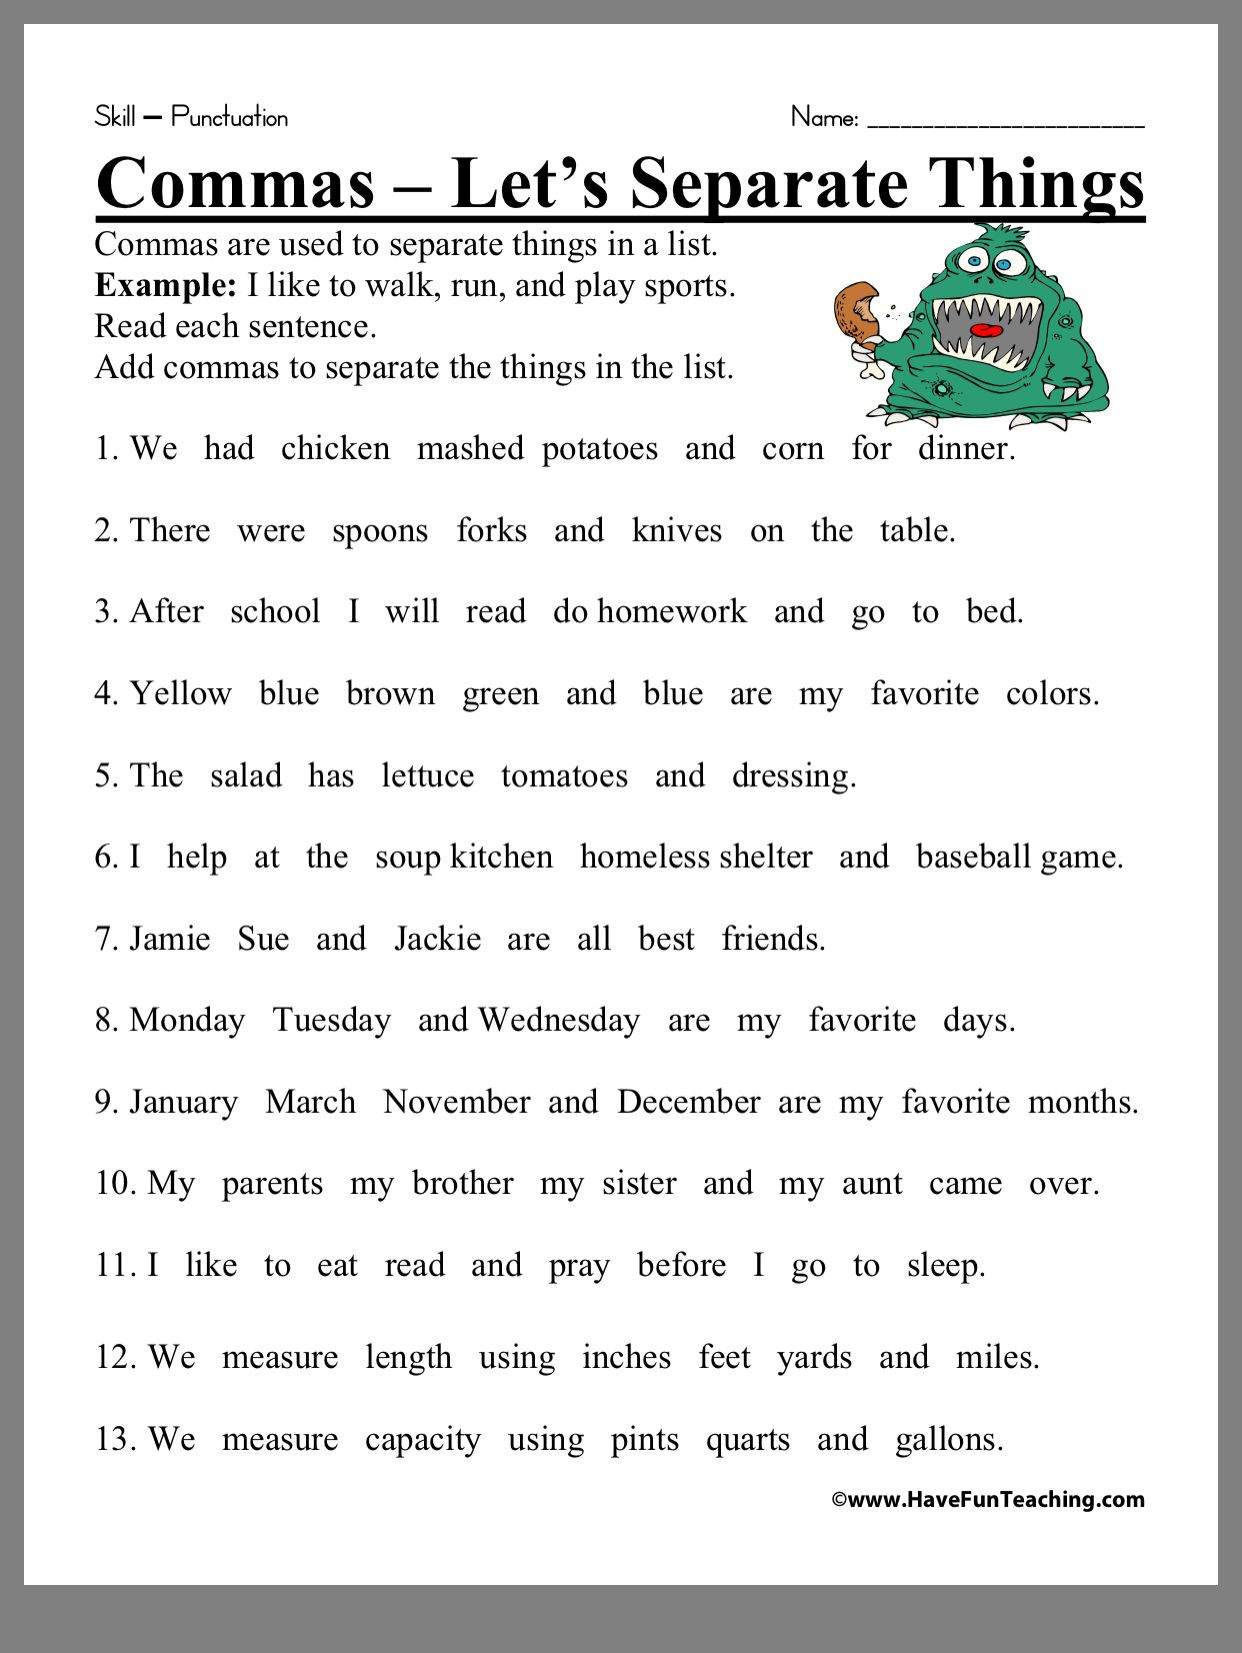 Comma Worksheets Middle School Pin by ashley Fenelon On Classroom